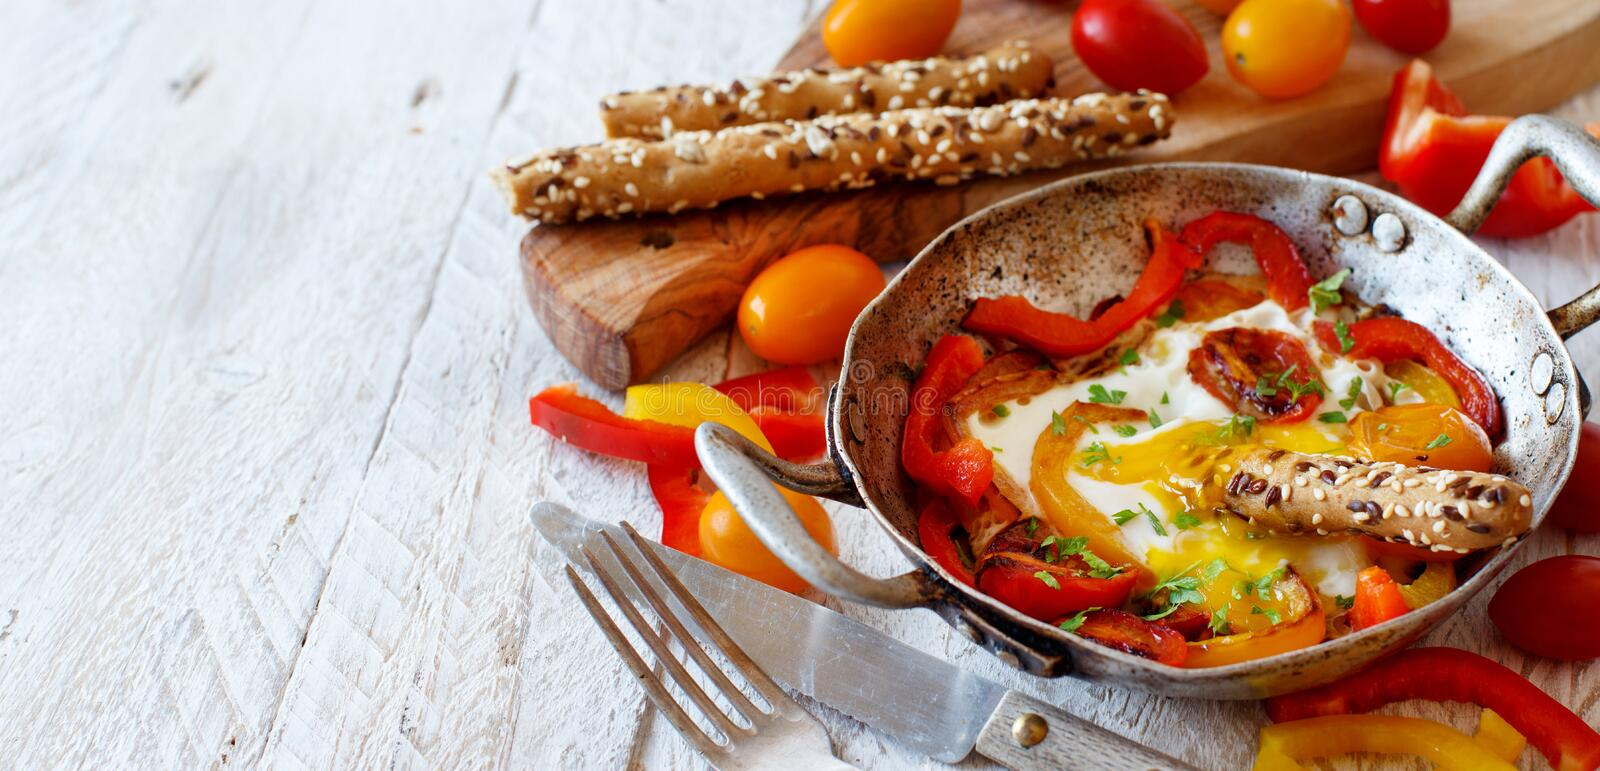 Fried egg with a bell pepper and tomatoes royalty free stock photography